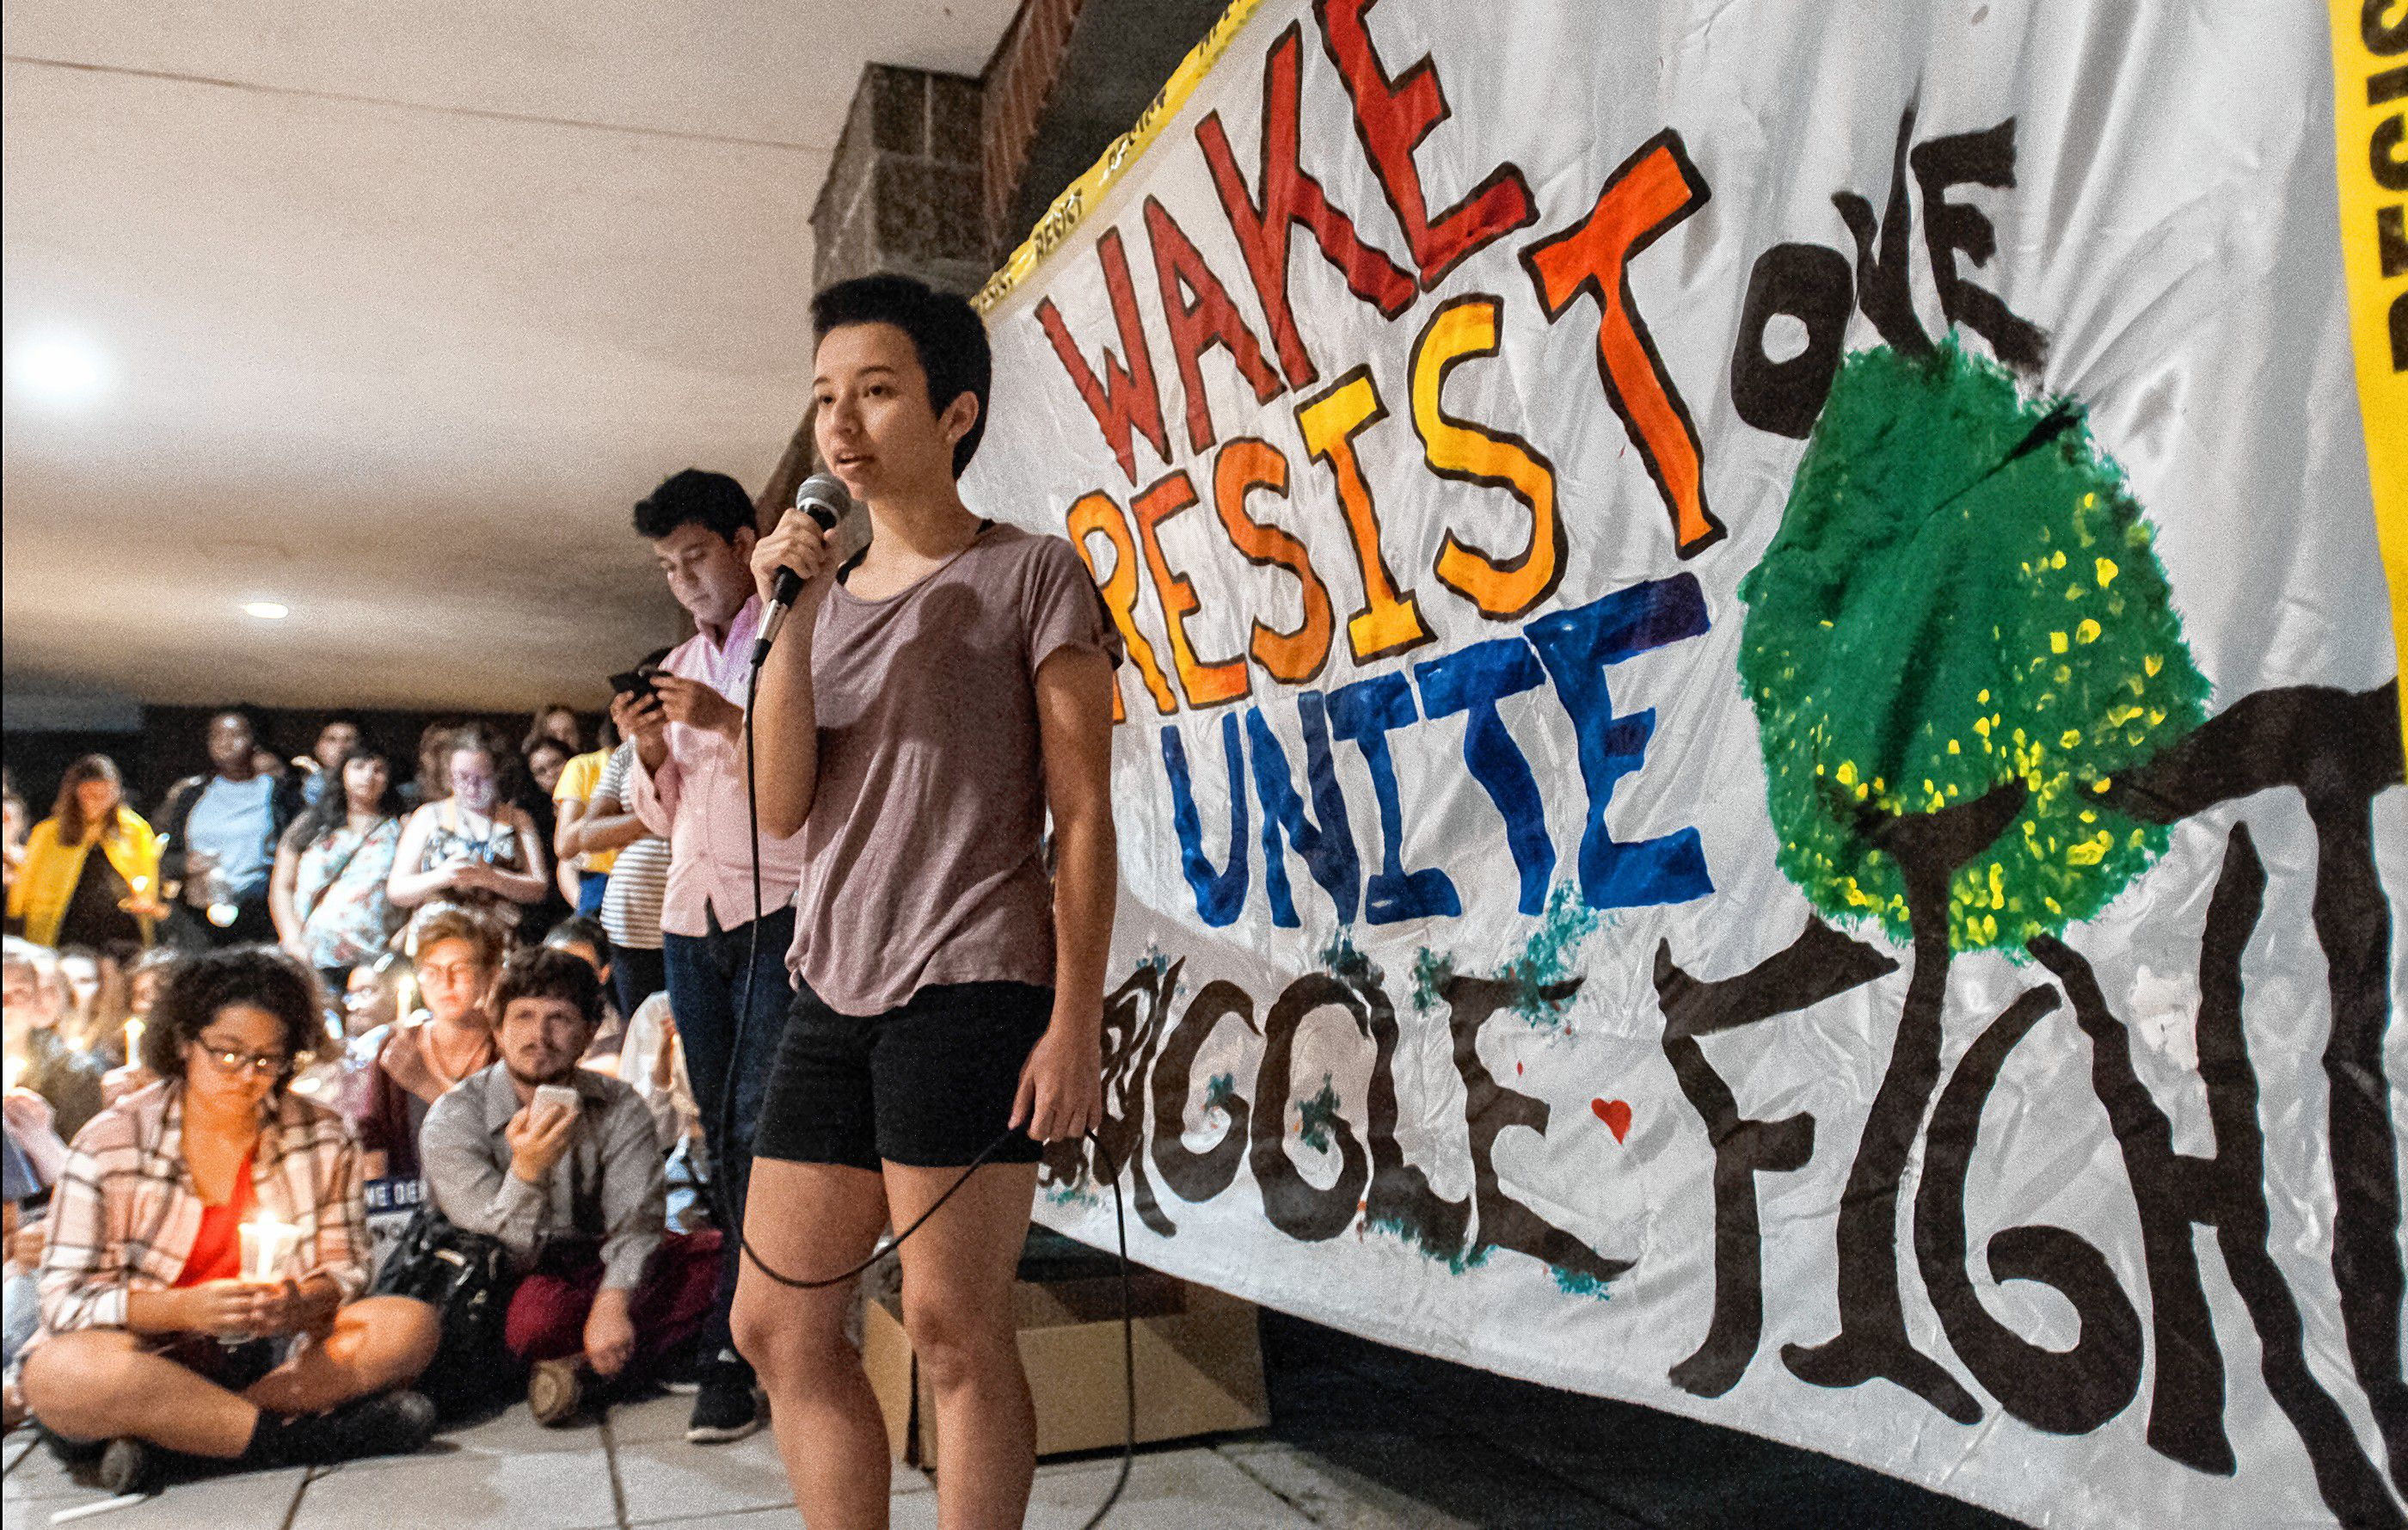 Massachusetts Is Progressive But Not On Immigrant Rights Utter Buzz Toyota Echo Wiring Diagram 04 Explorer Obd Connector Diana Umana A Smith College Student And Daca Enrollee Addresses The Rally Kevin Gutting Photo